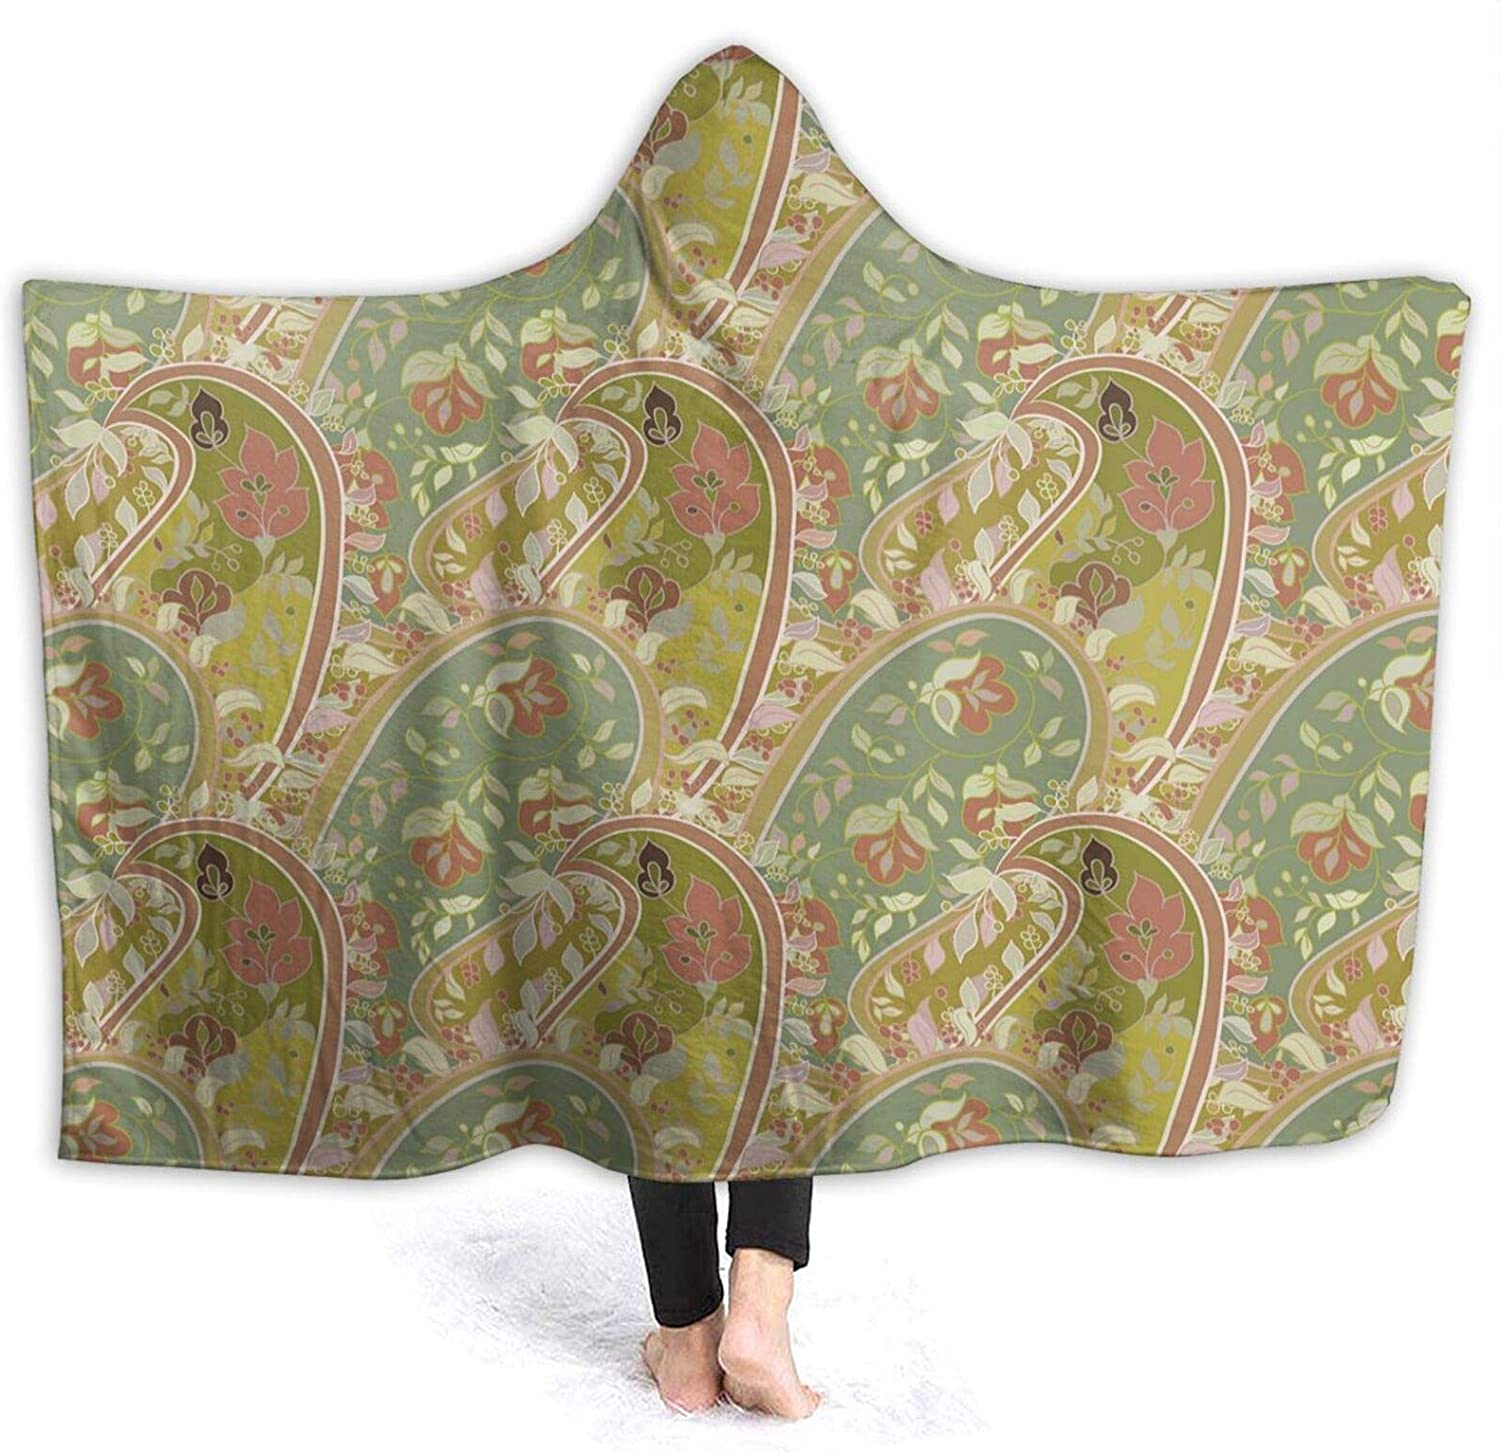 NYIVBE Colourful Outlet SALE Flowers Hooded Blanket Fle Warm Cozy Soft Super Courier shipping free